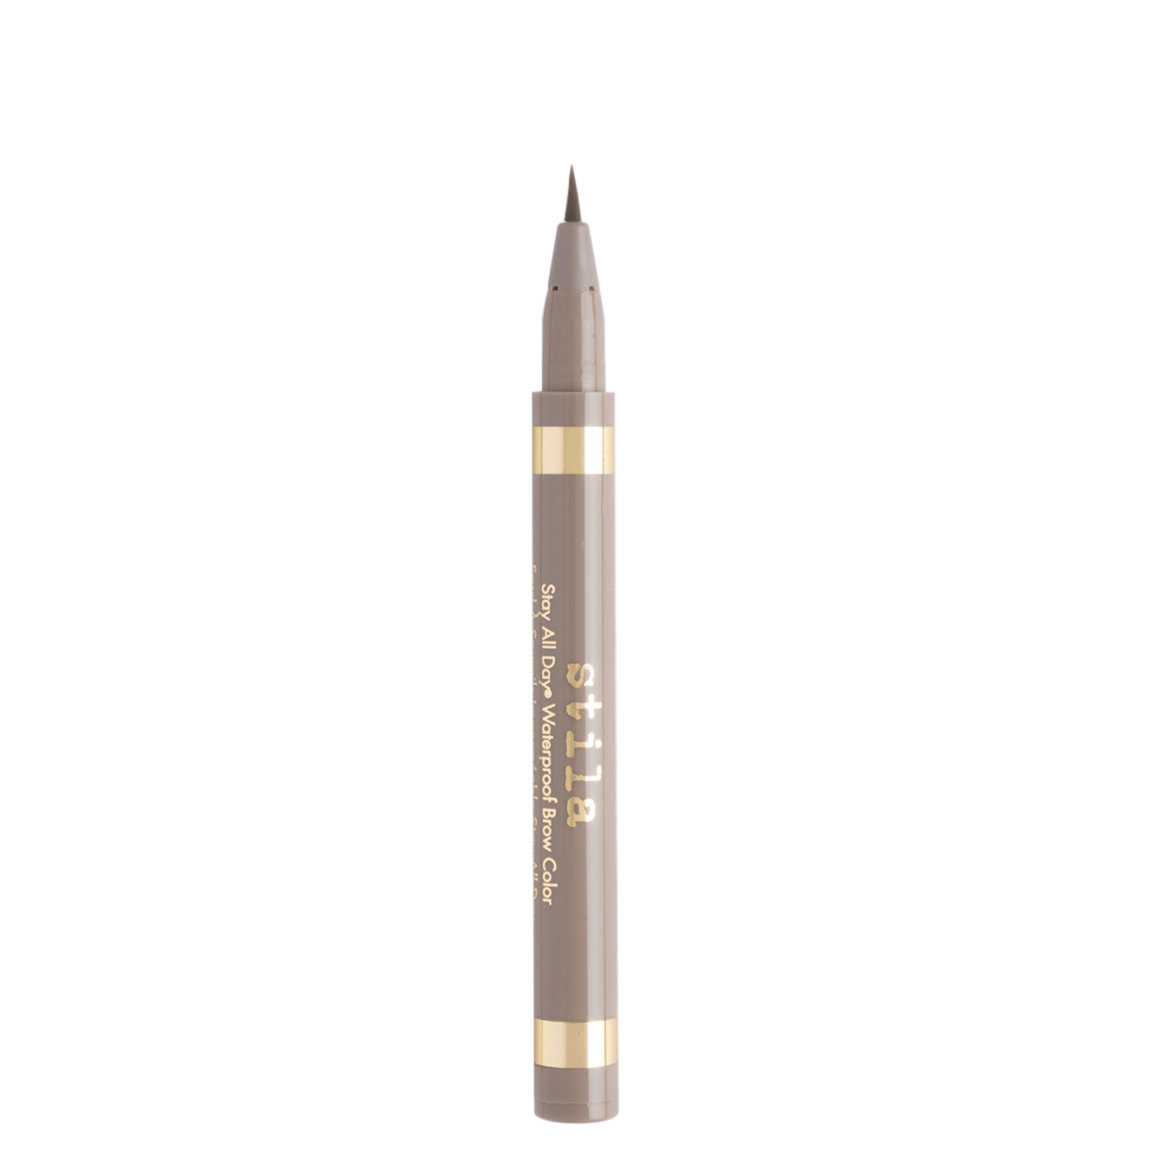 Stila Stay All Day Waterproof Brow Color Medium alternative view 1.